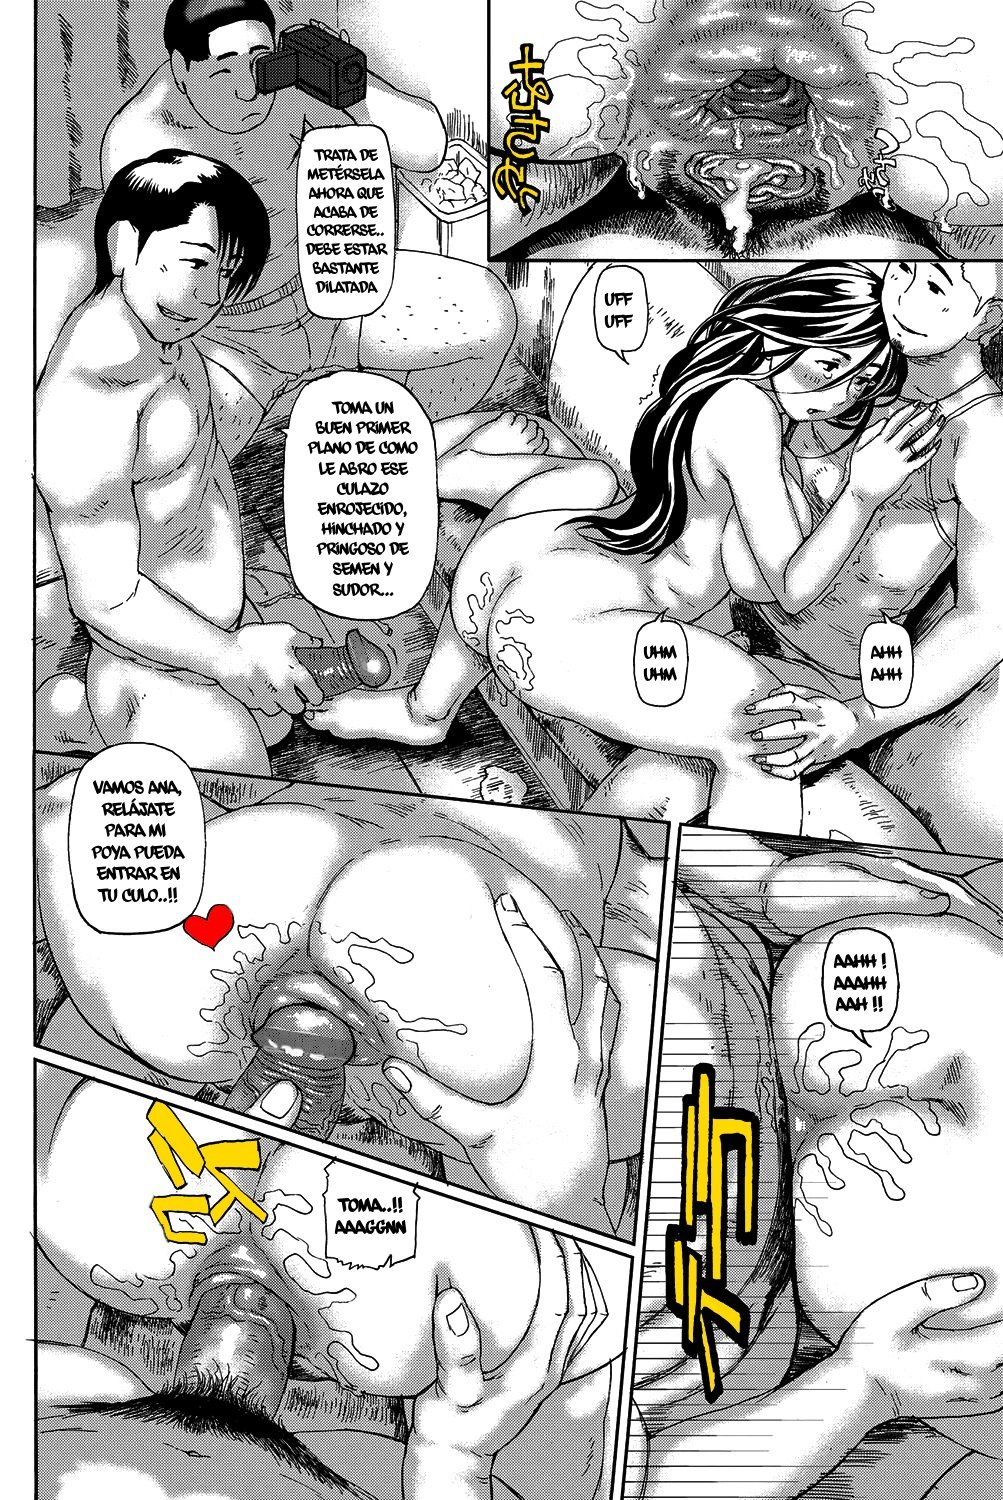 video sexo maduras videos manga